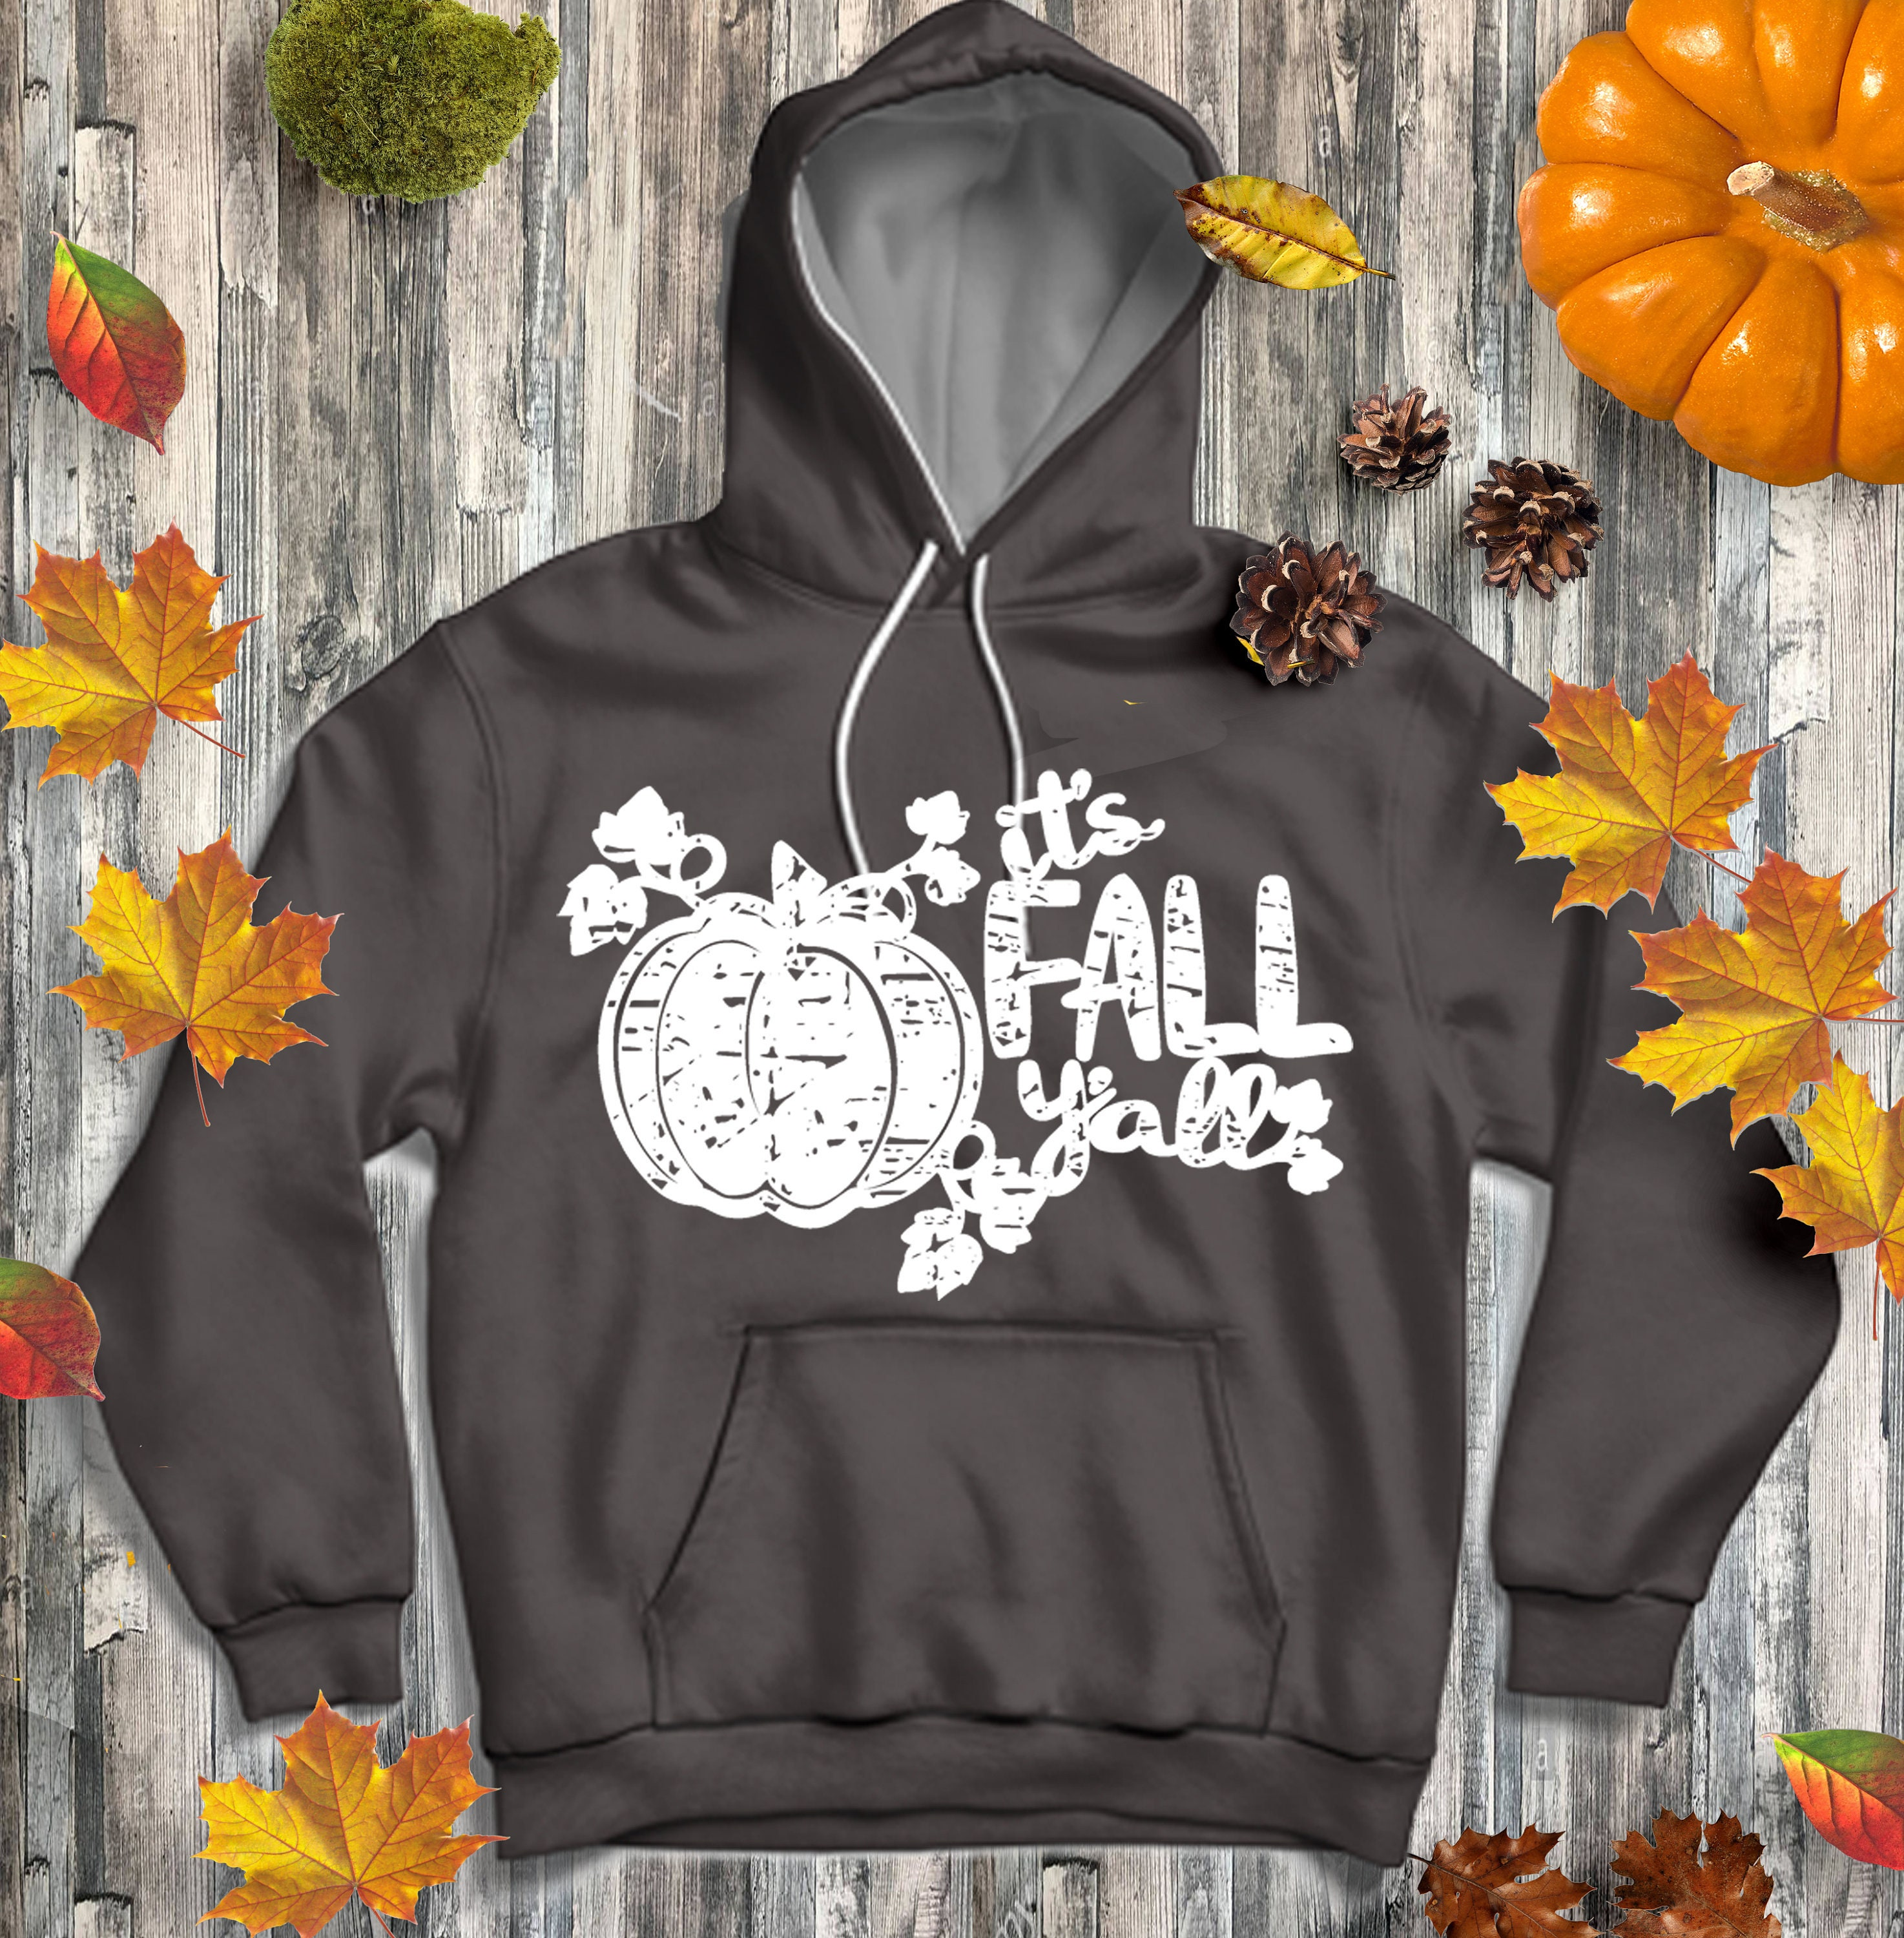 It S Fall Y All Pumpkin Svg Autumn Distressed Grunge Svg Classic Truck Svg Cut File Dxf Eps Png For Silhouette Cricut Digital Cut Files